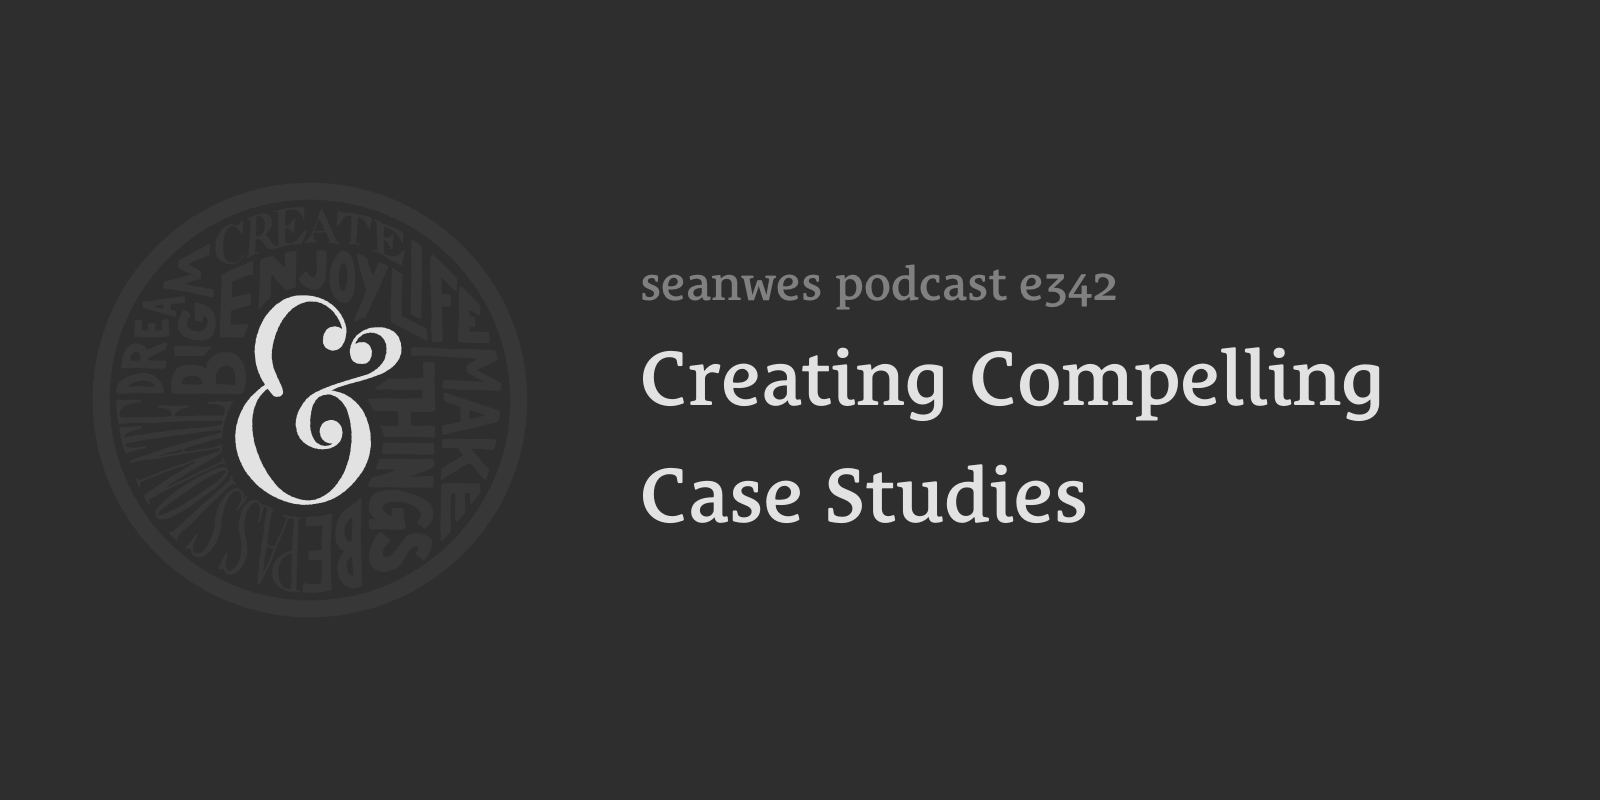 seanwes podcast 342: Creating Compelling Case Studies